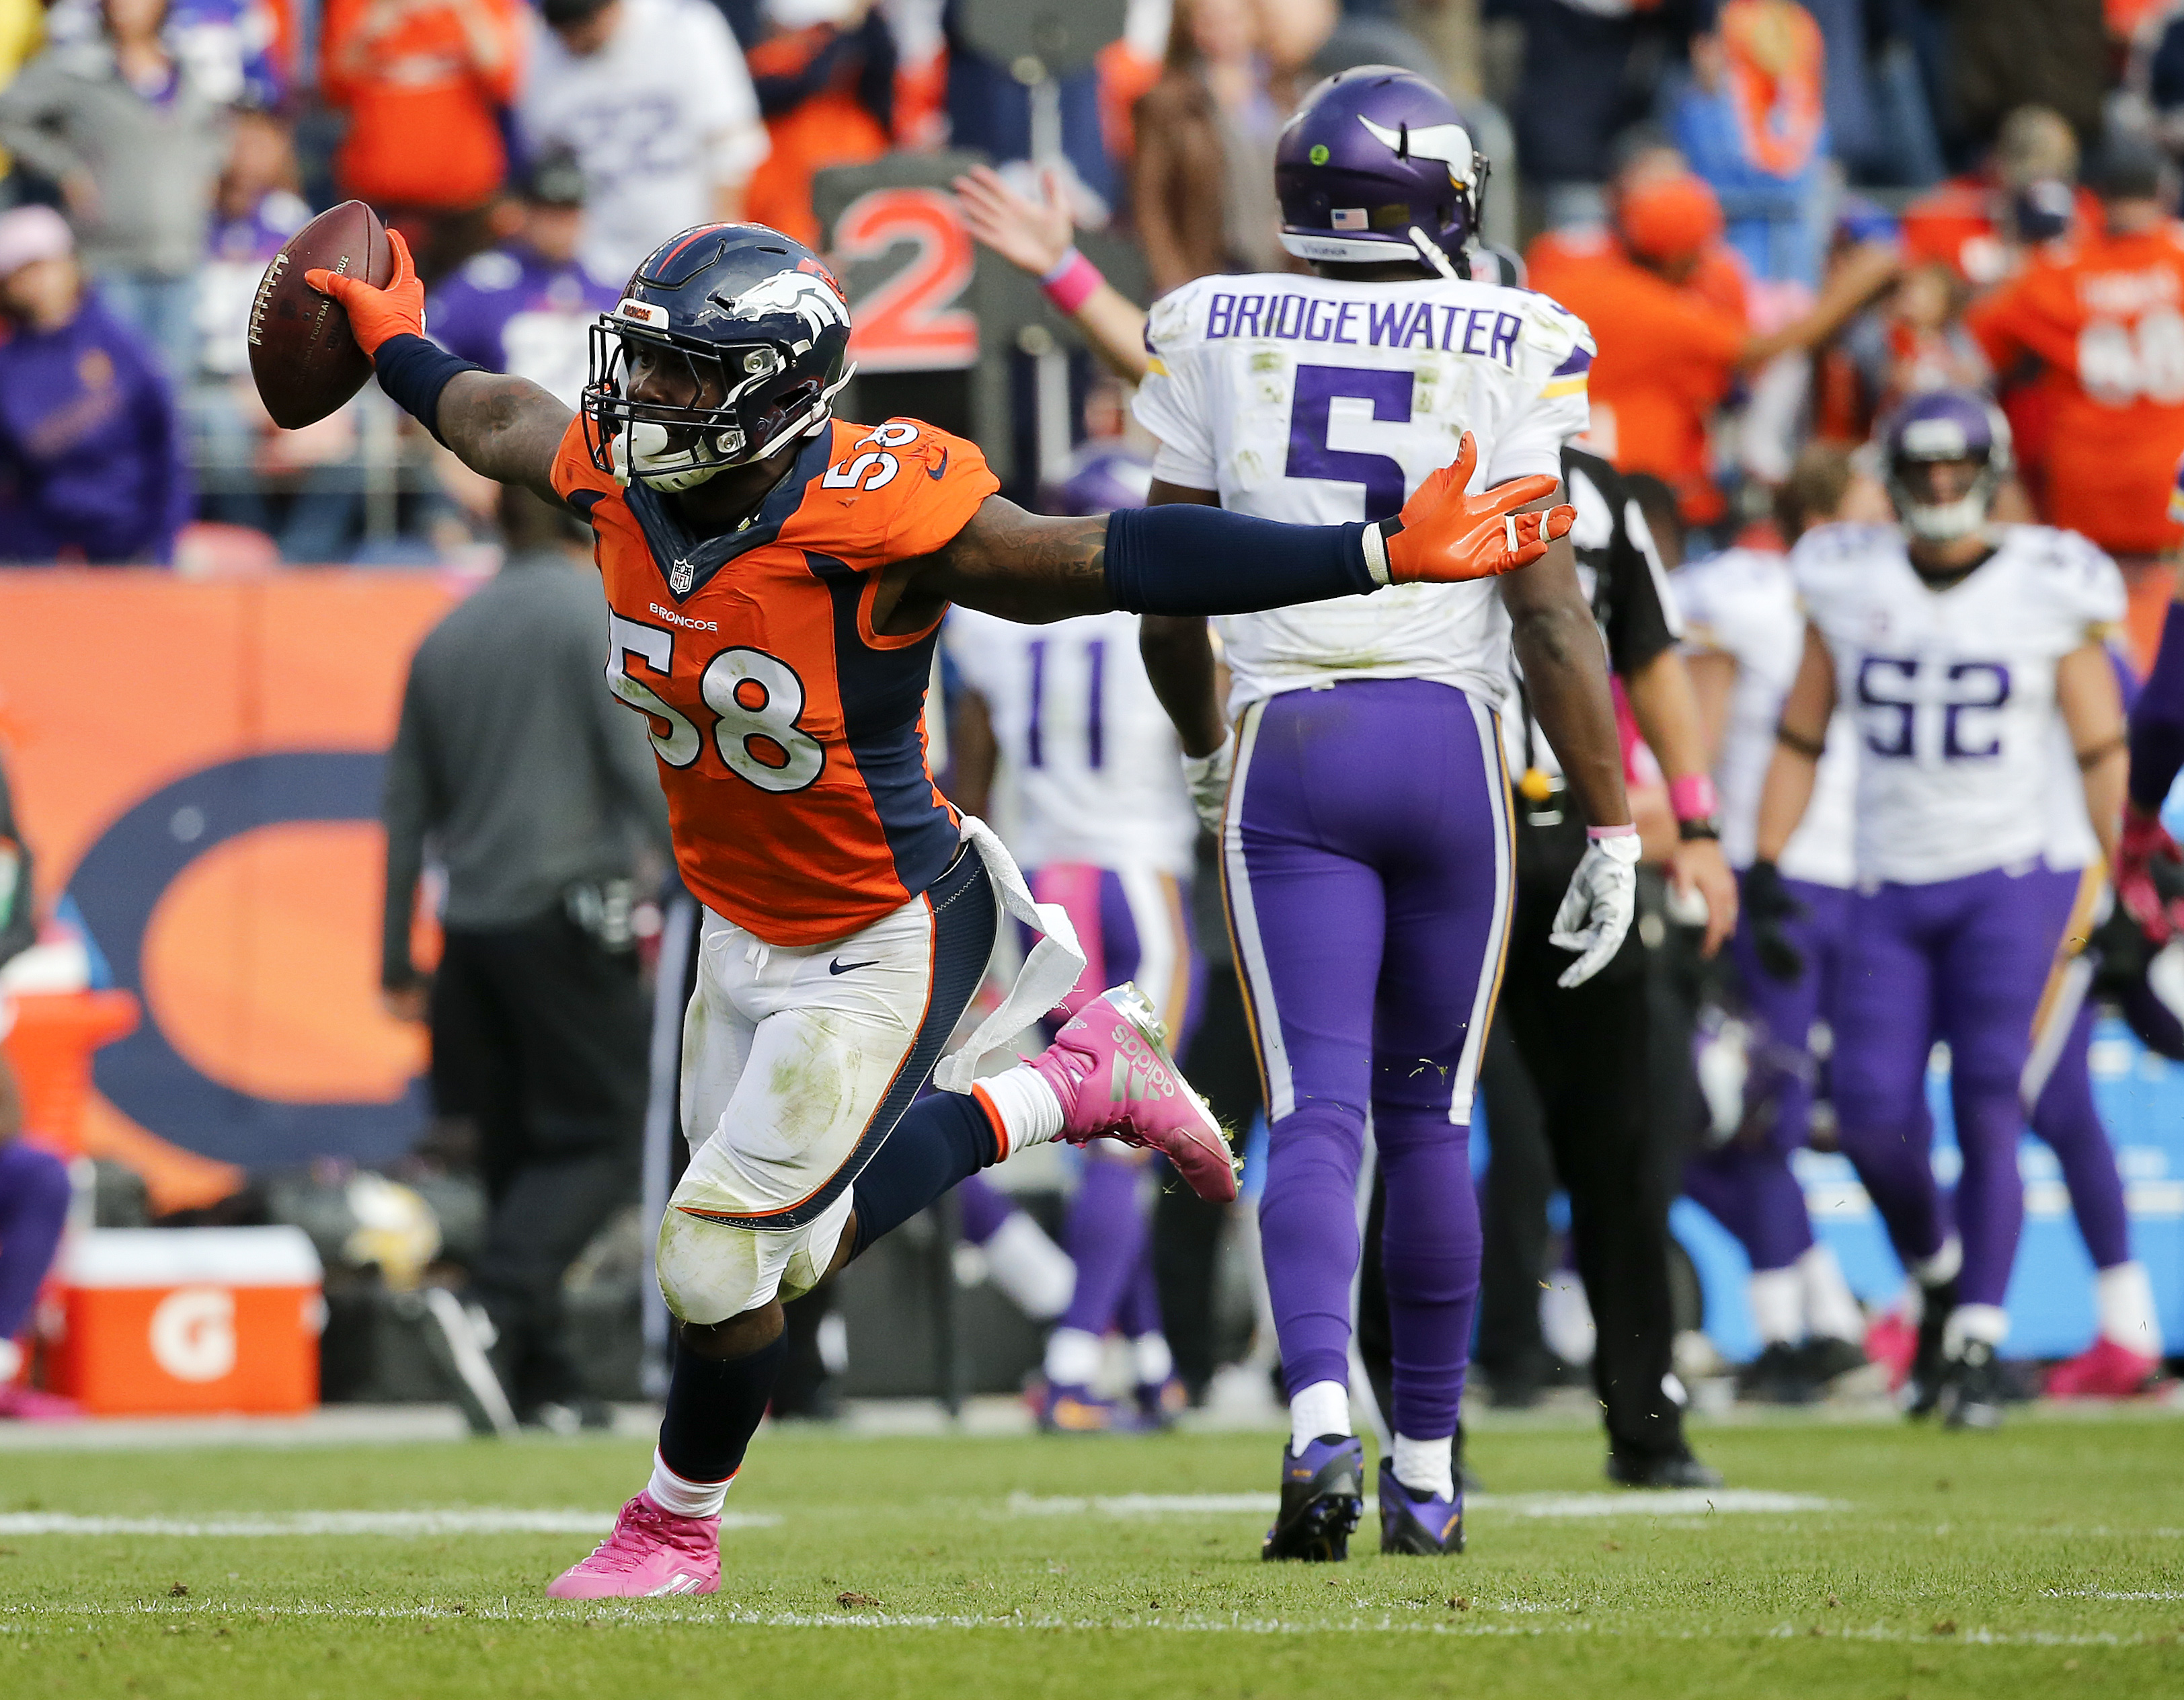 Denver Broncos outside linebacker Von Miller (58) celebrates after sacking Minnesota Vikings quarterback Teddy Bridgewater (5) during the second half of an NFL football game Sunday, Oct. 4, 2015, in Denver. (AP Photo/Jack Dempsey)